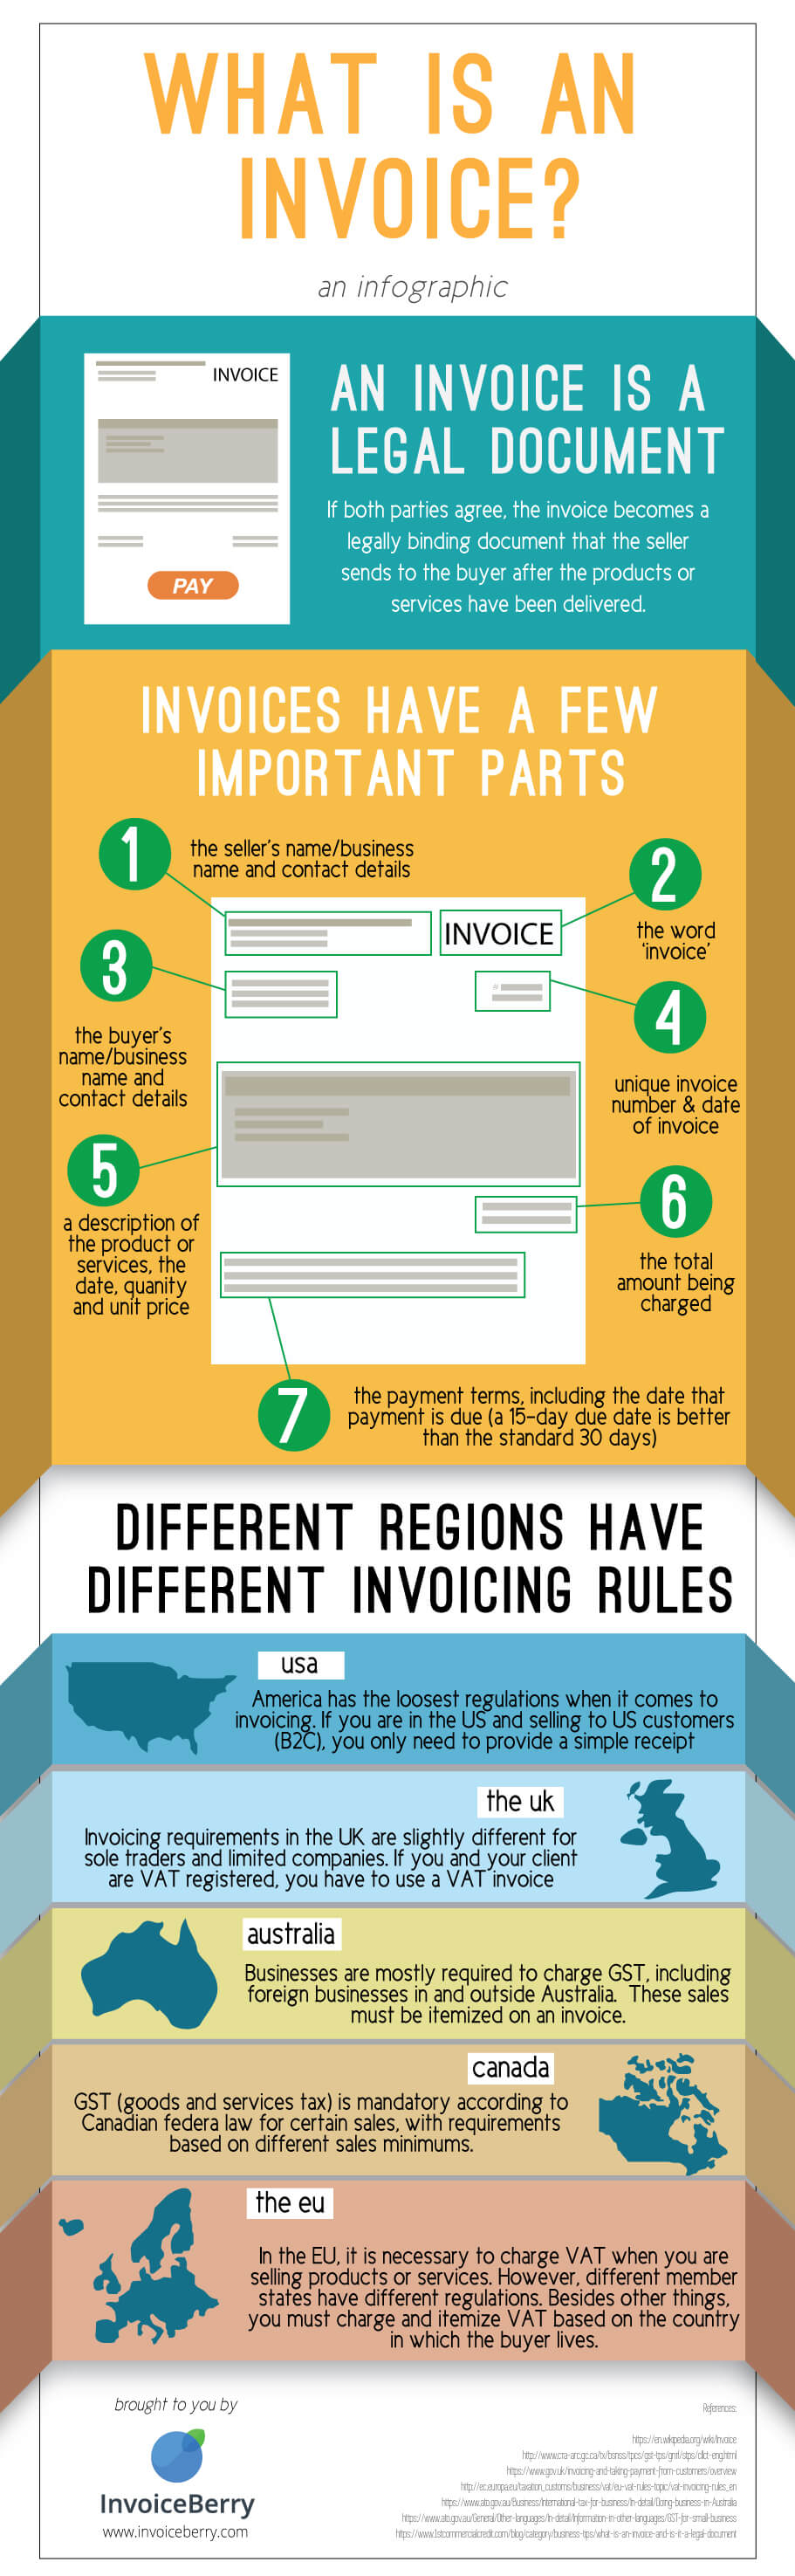 "Check out our infographic ""What is an invoice?"" to help answer your invoicing questions"